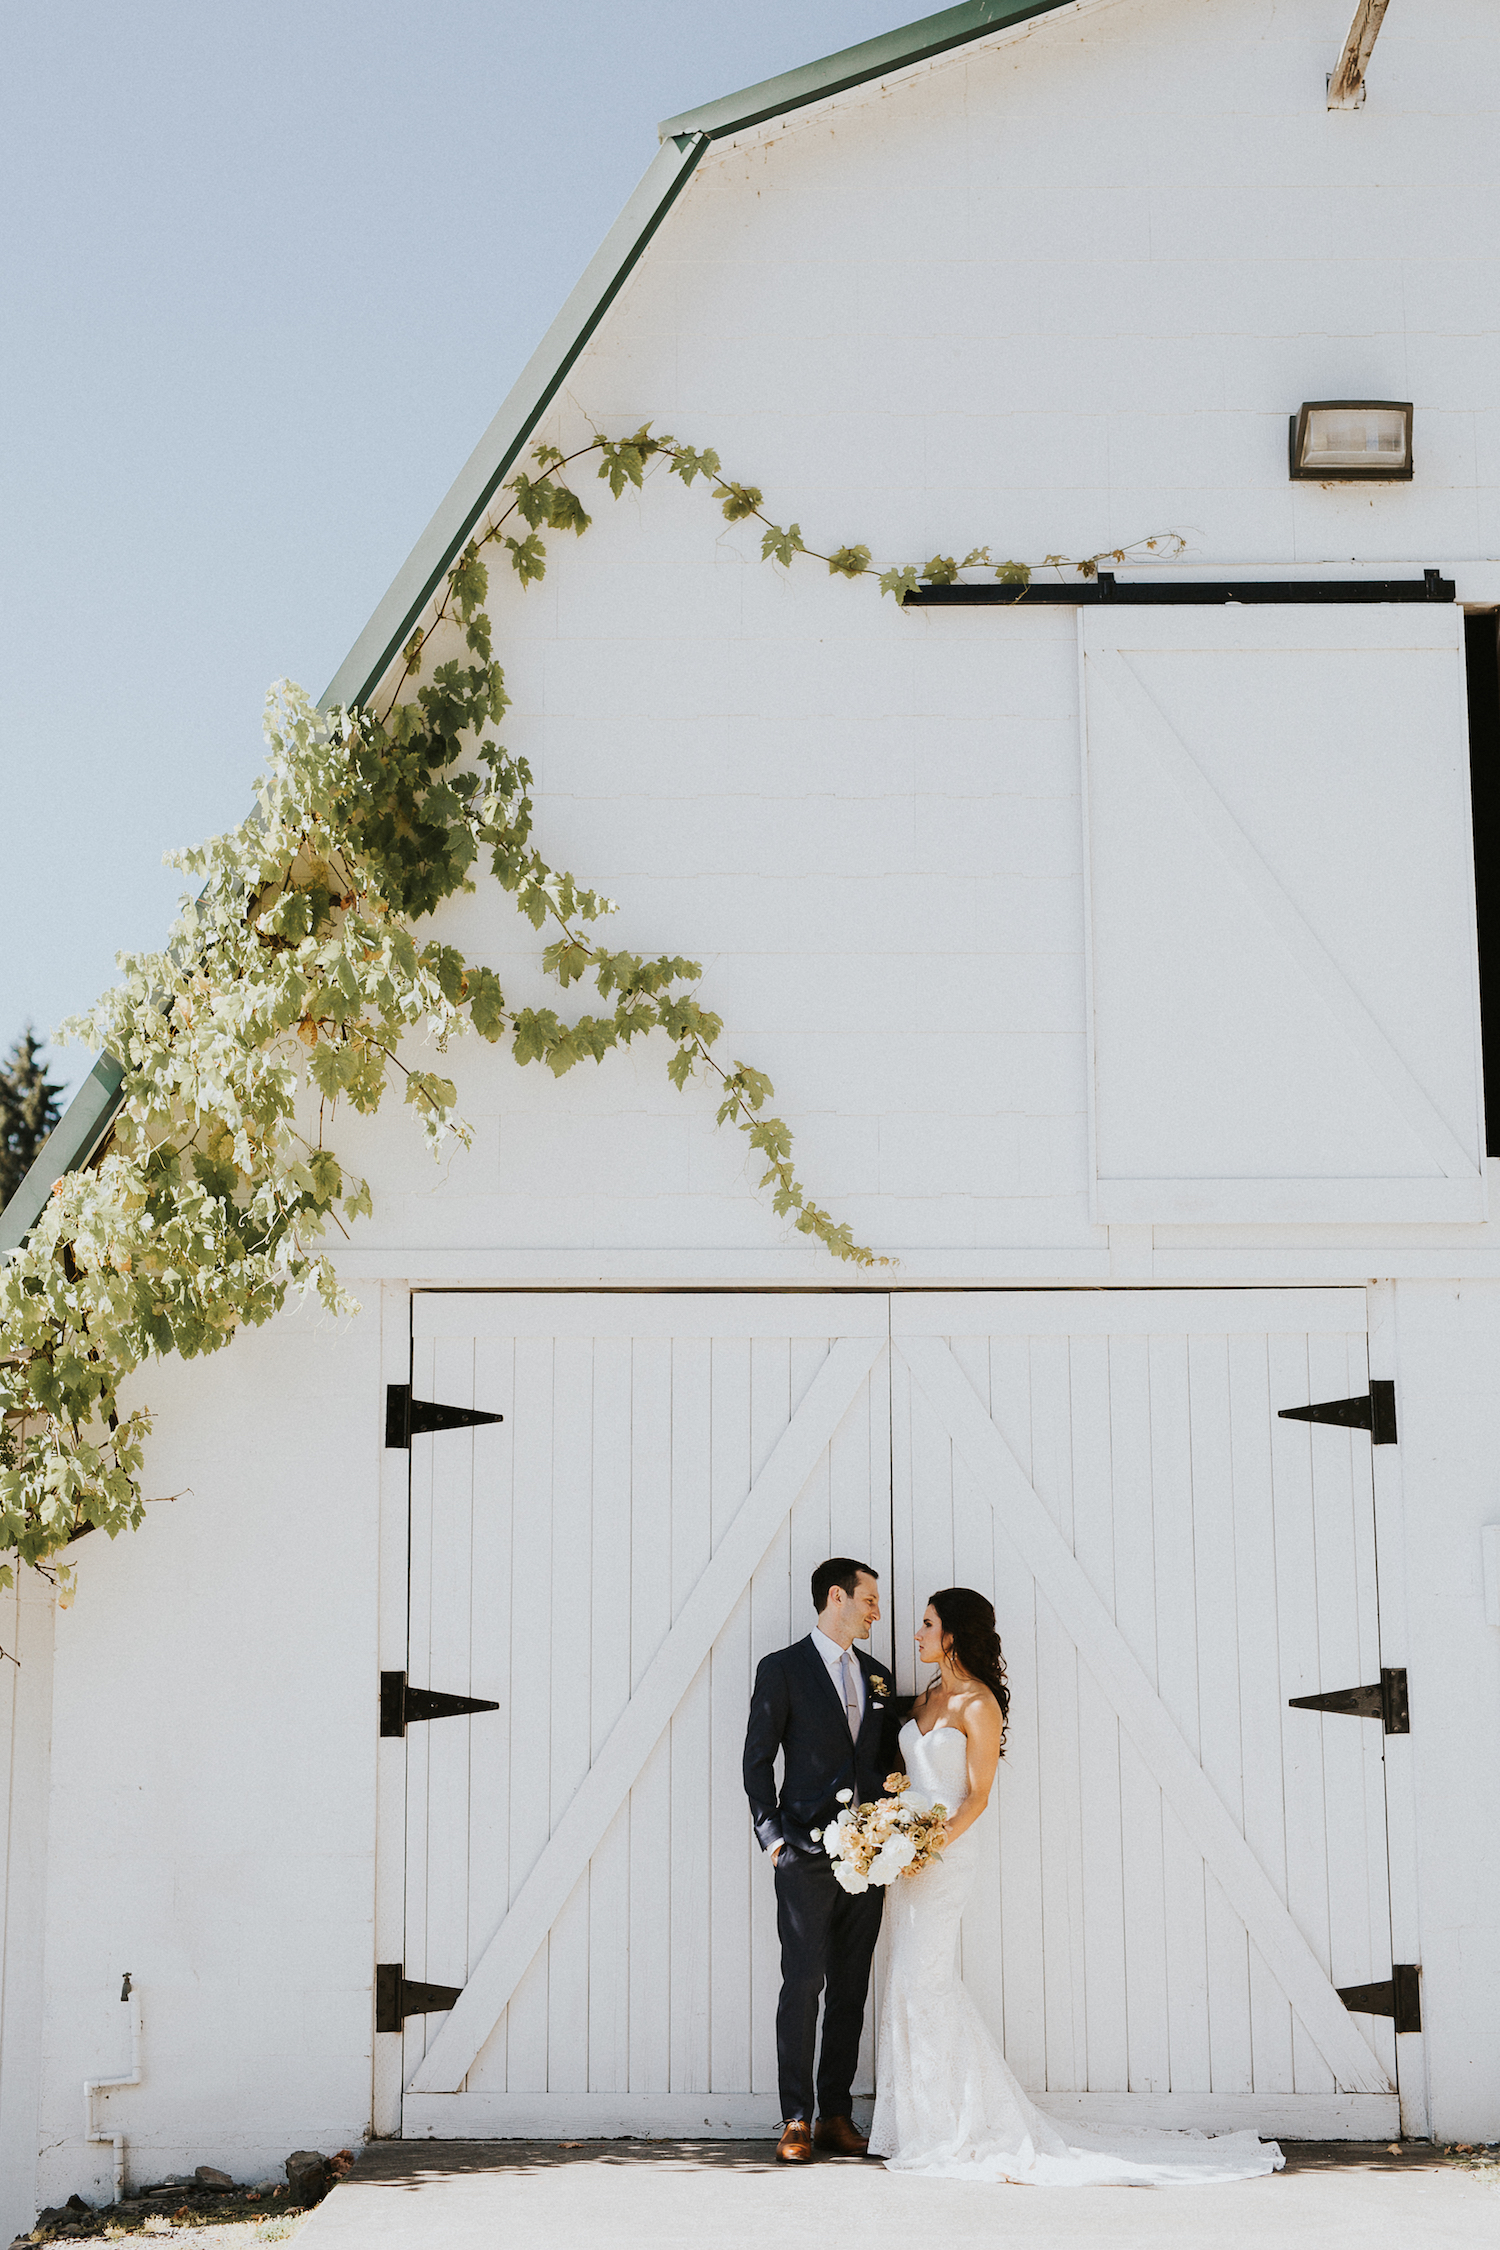 Wild Bloom Floral - Rachel Birkhofer Photography - Jessica and Phil - Real Wedding - Seattle 19.jpeg